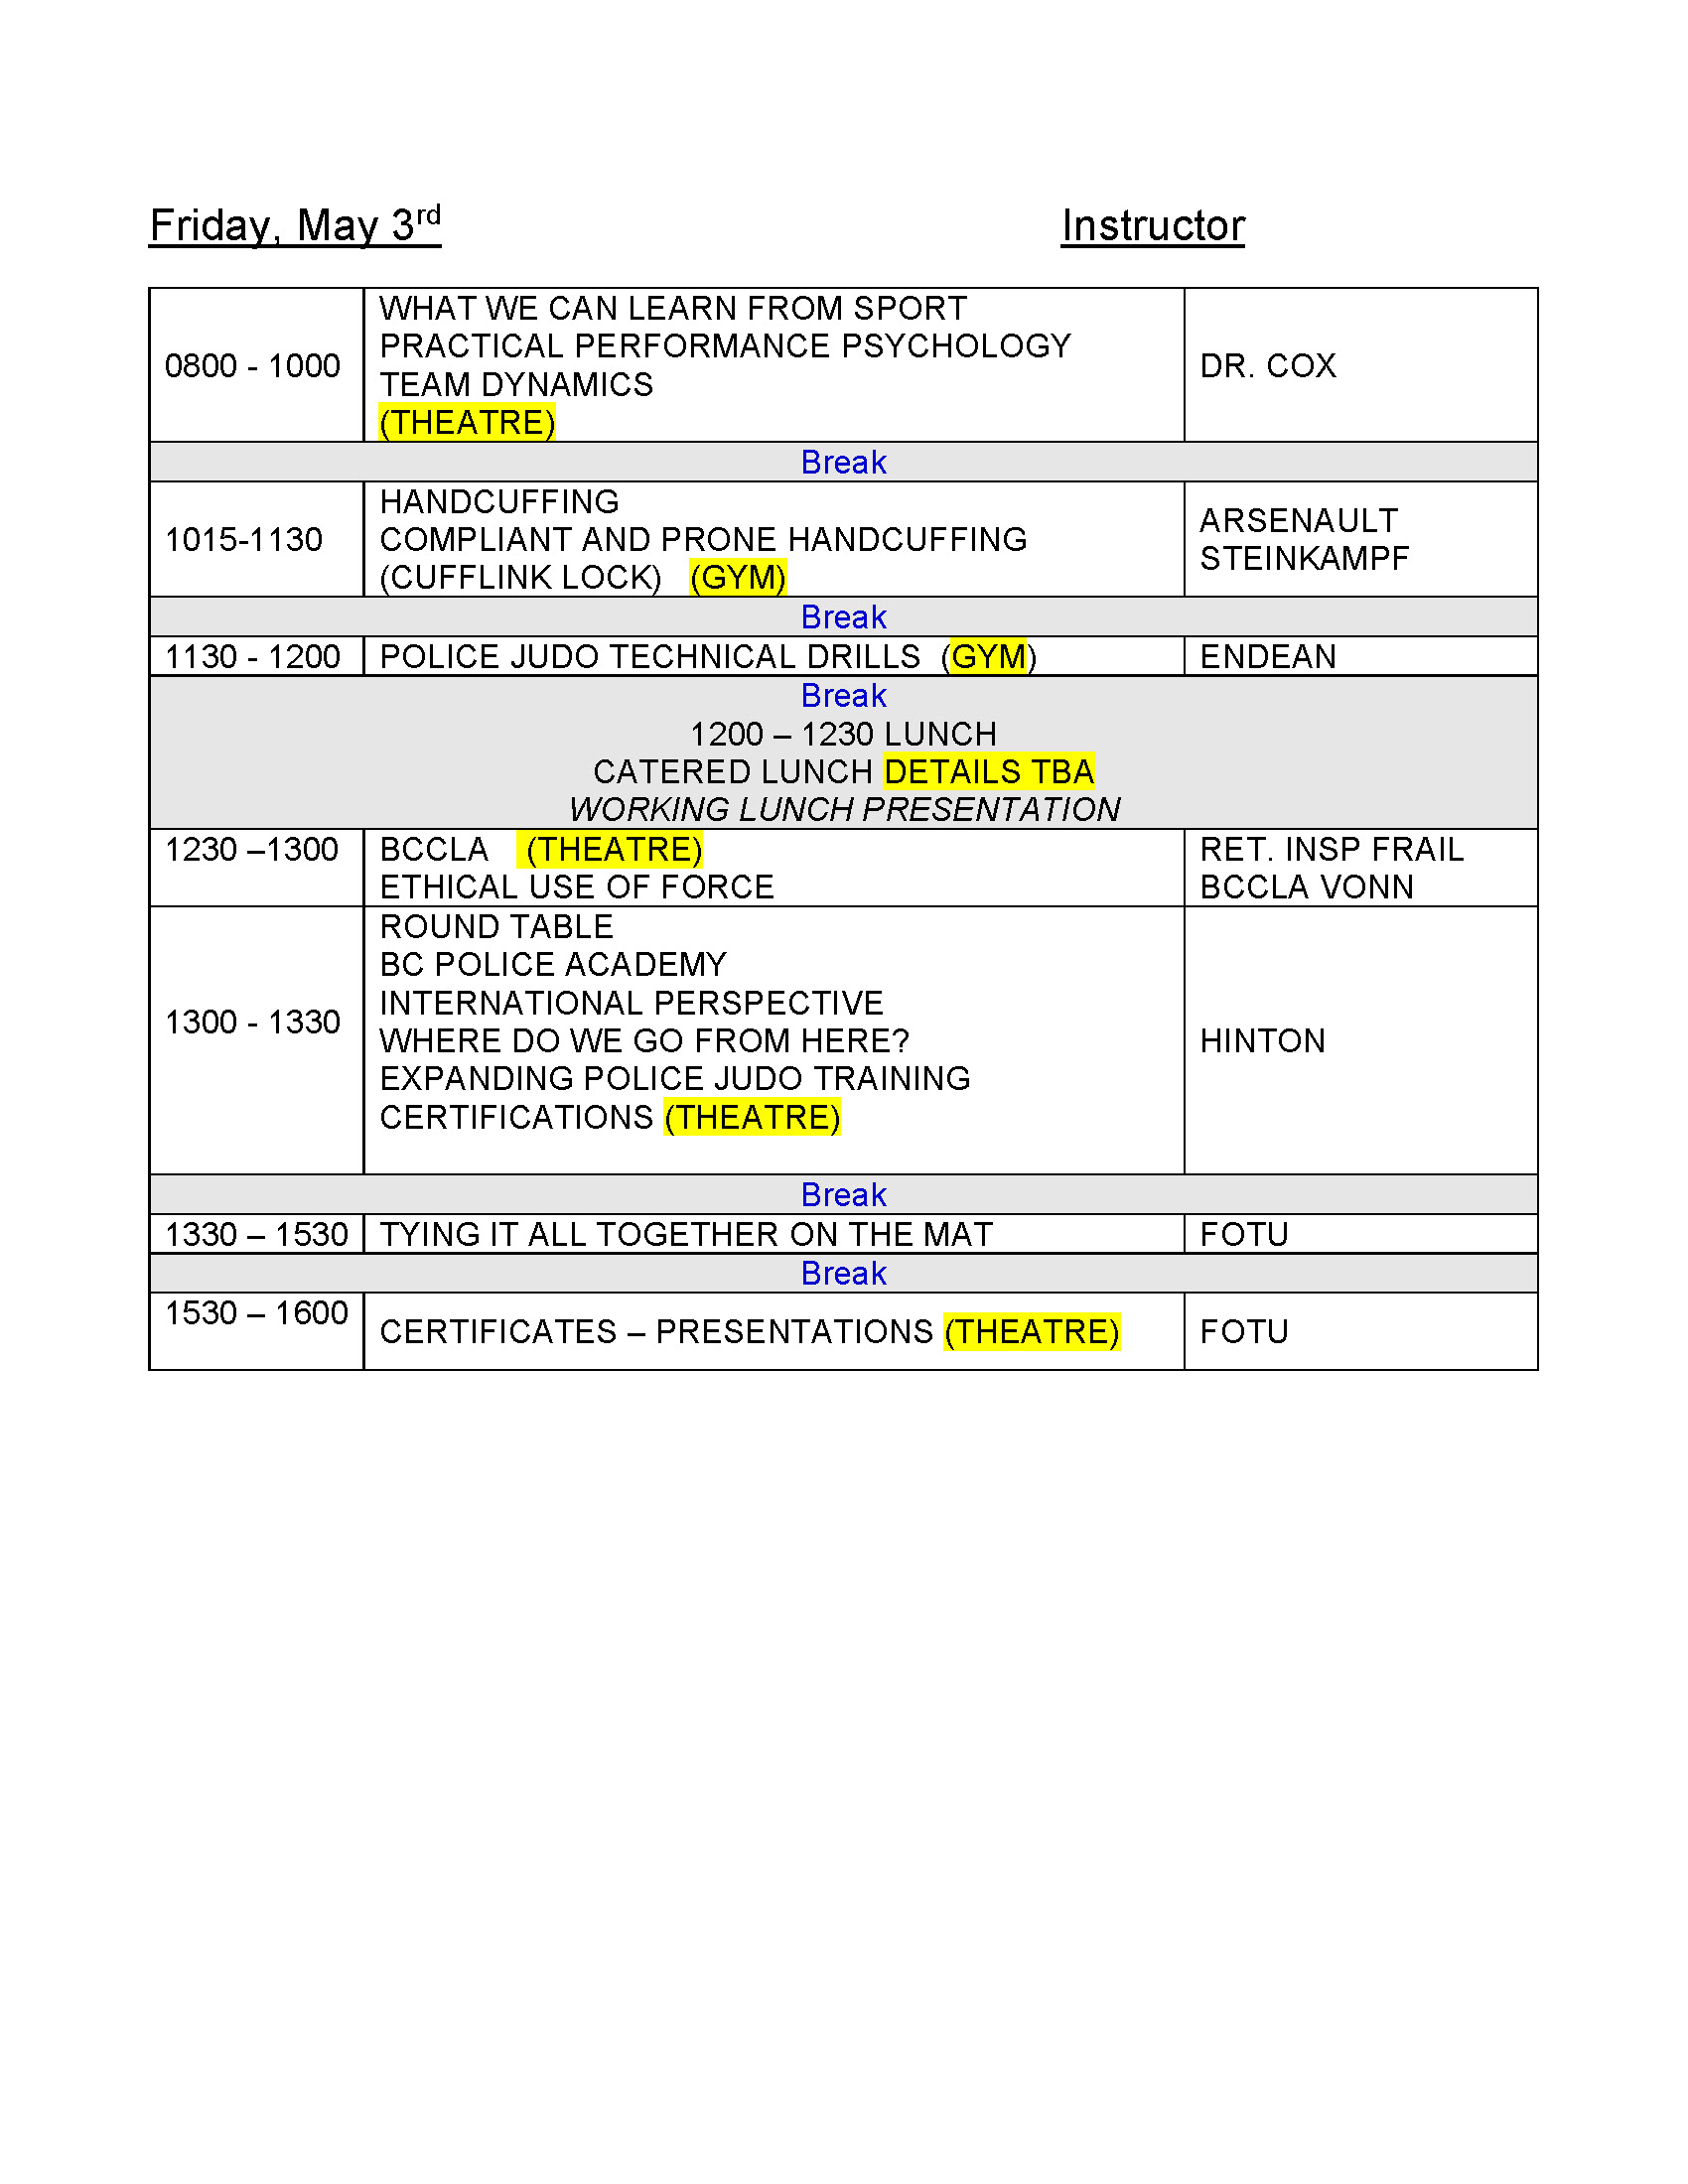 International Police Judo Clinic 2019 Schedule - March 30th version_Page_5.jpg